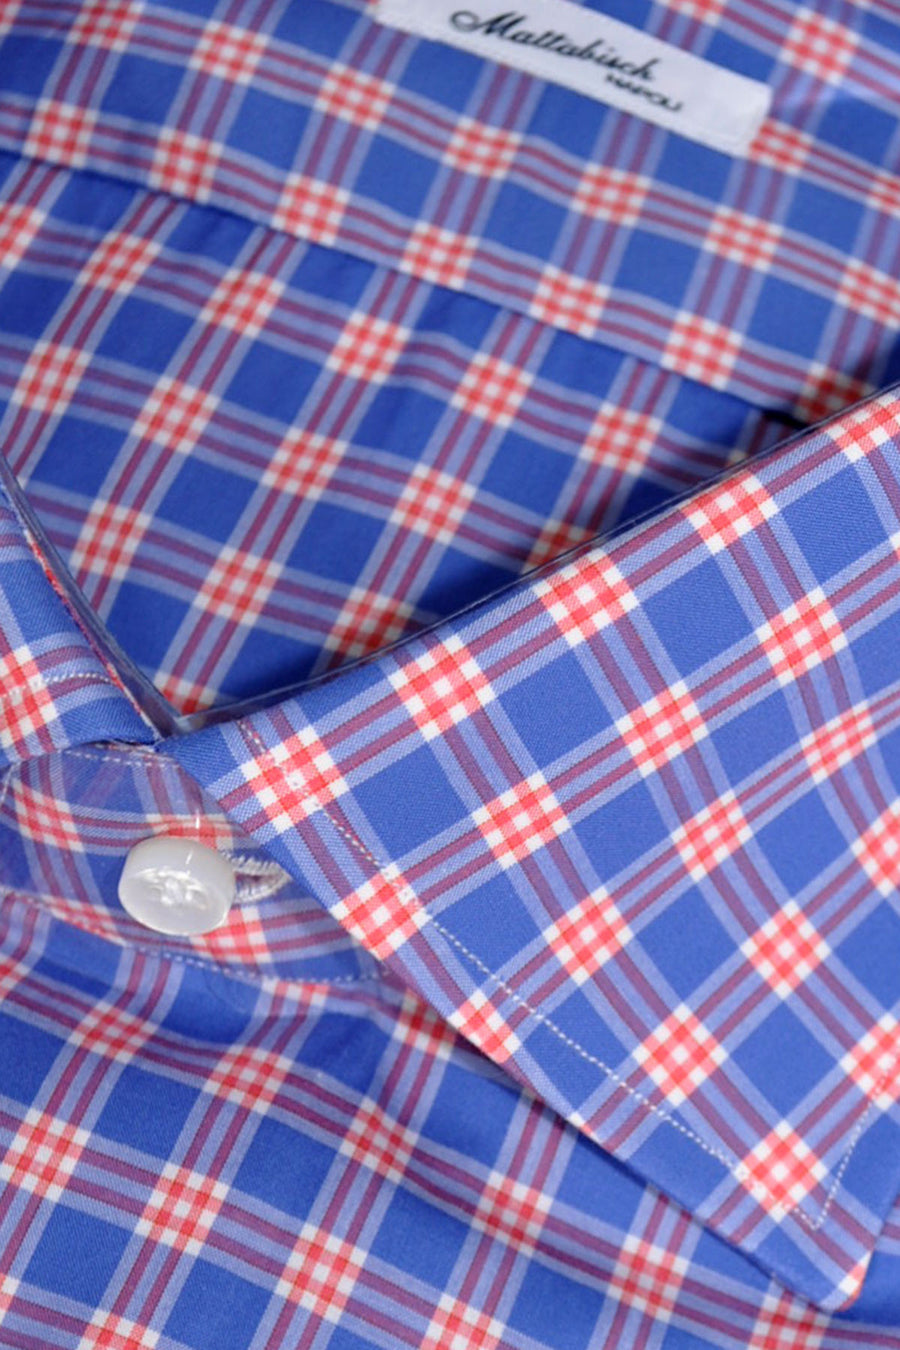 Mattabisch Dress Shirt Navy White Red